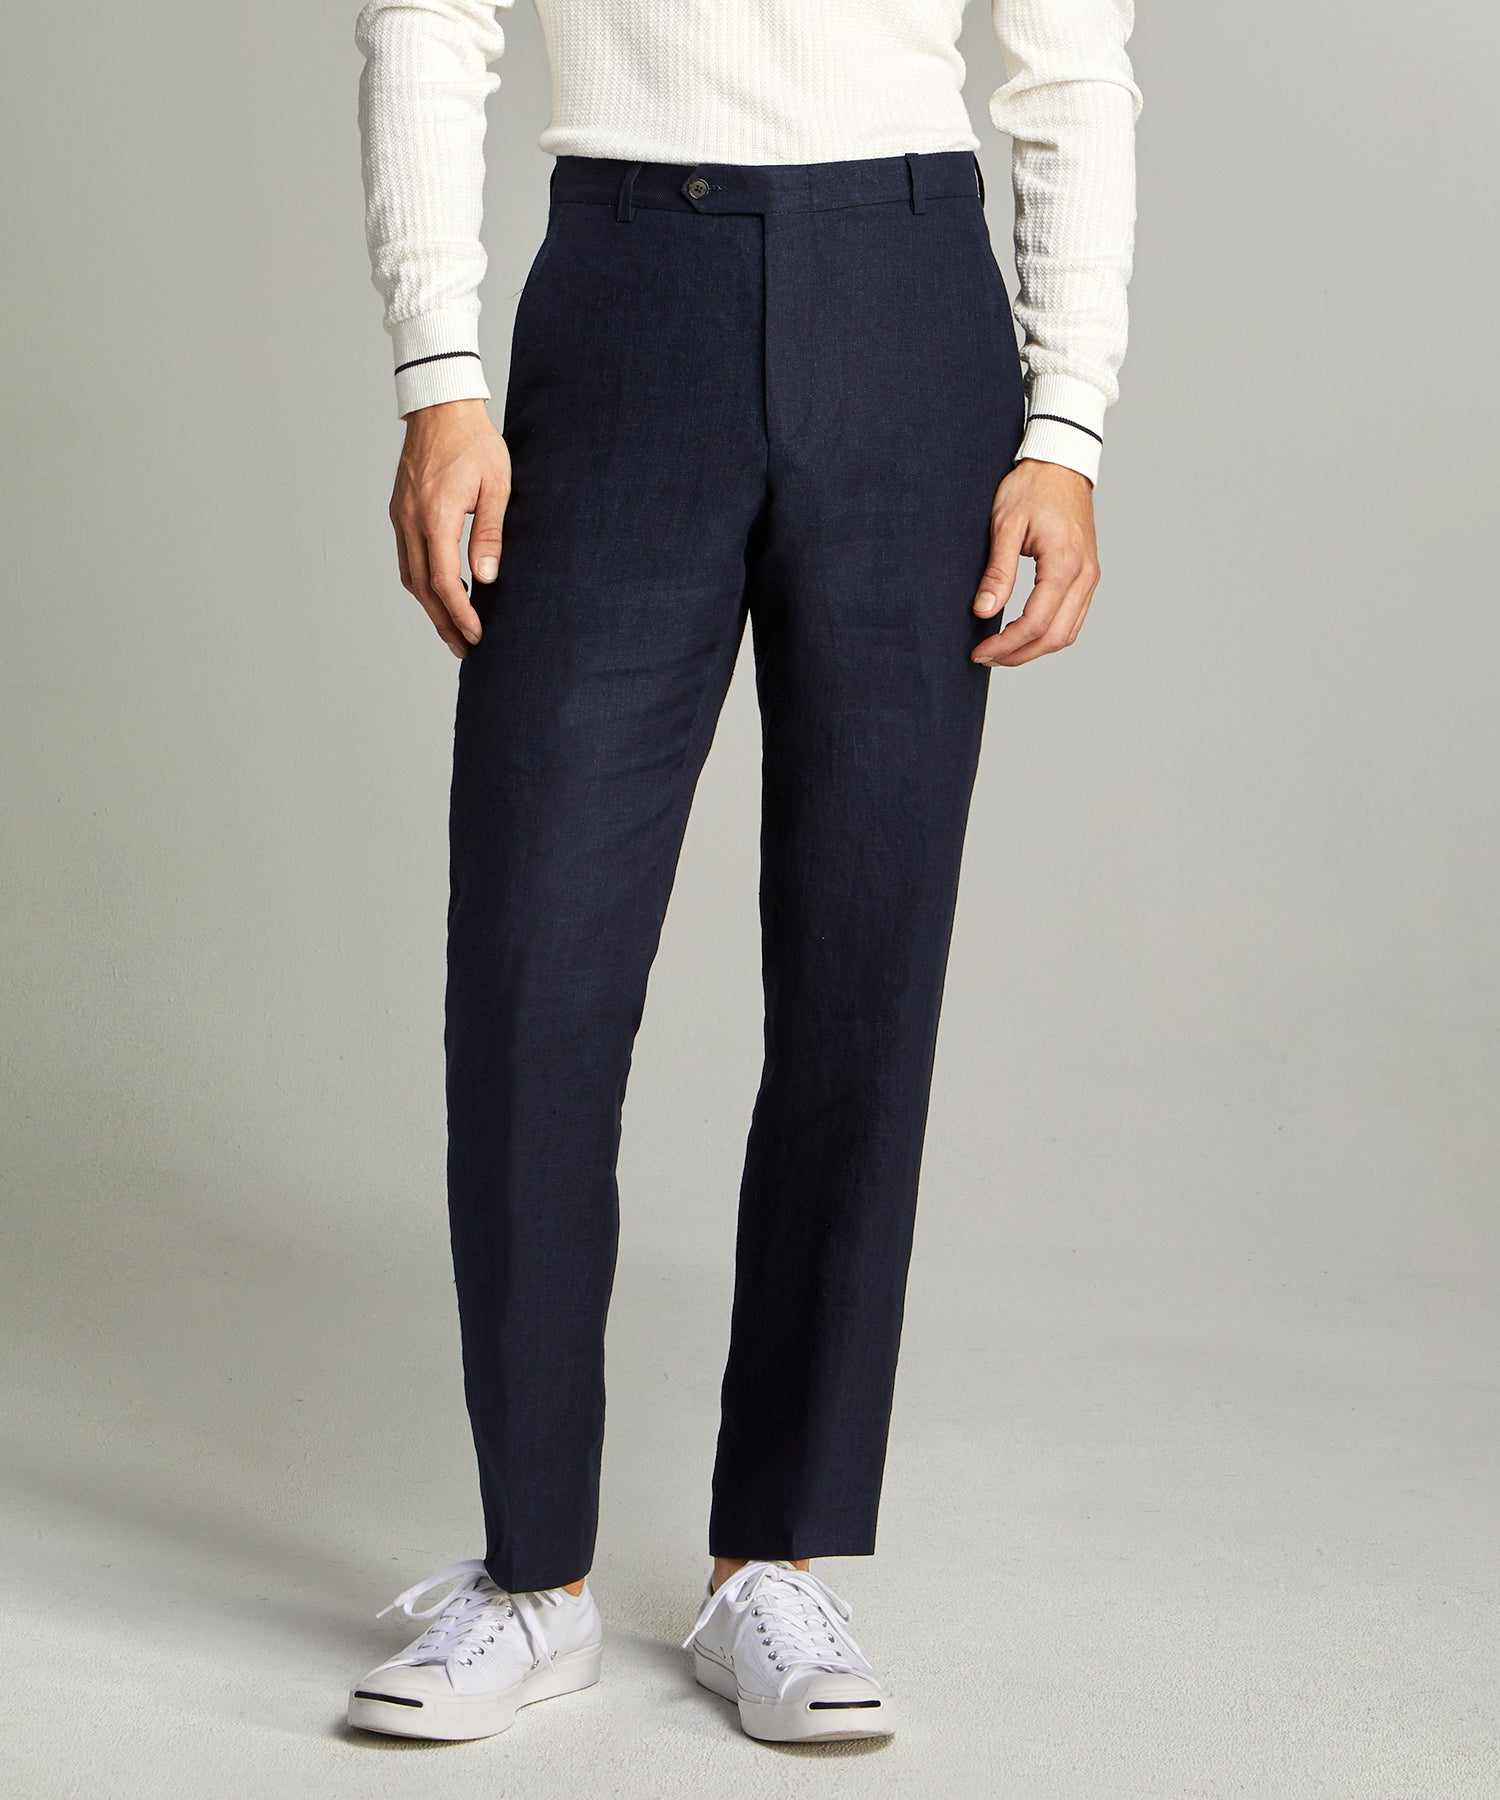 Linen Sack Suit Trouser in Indigo